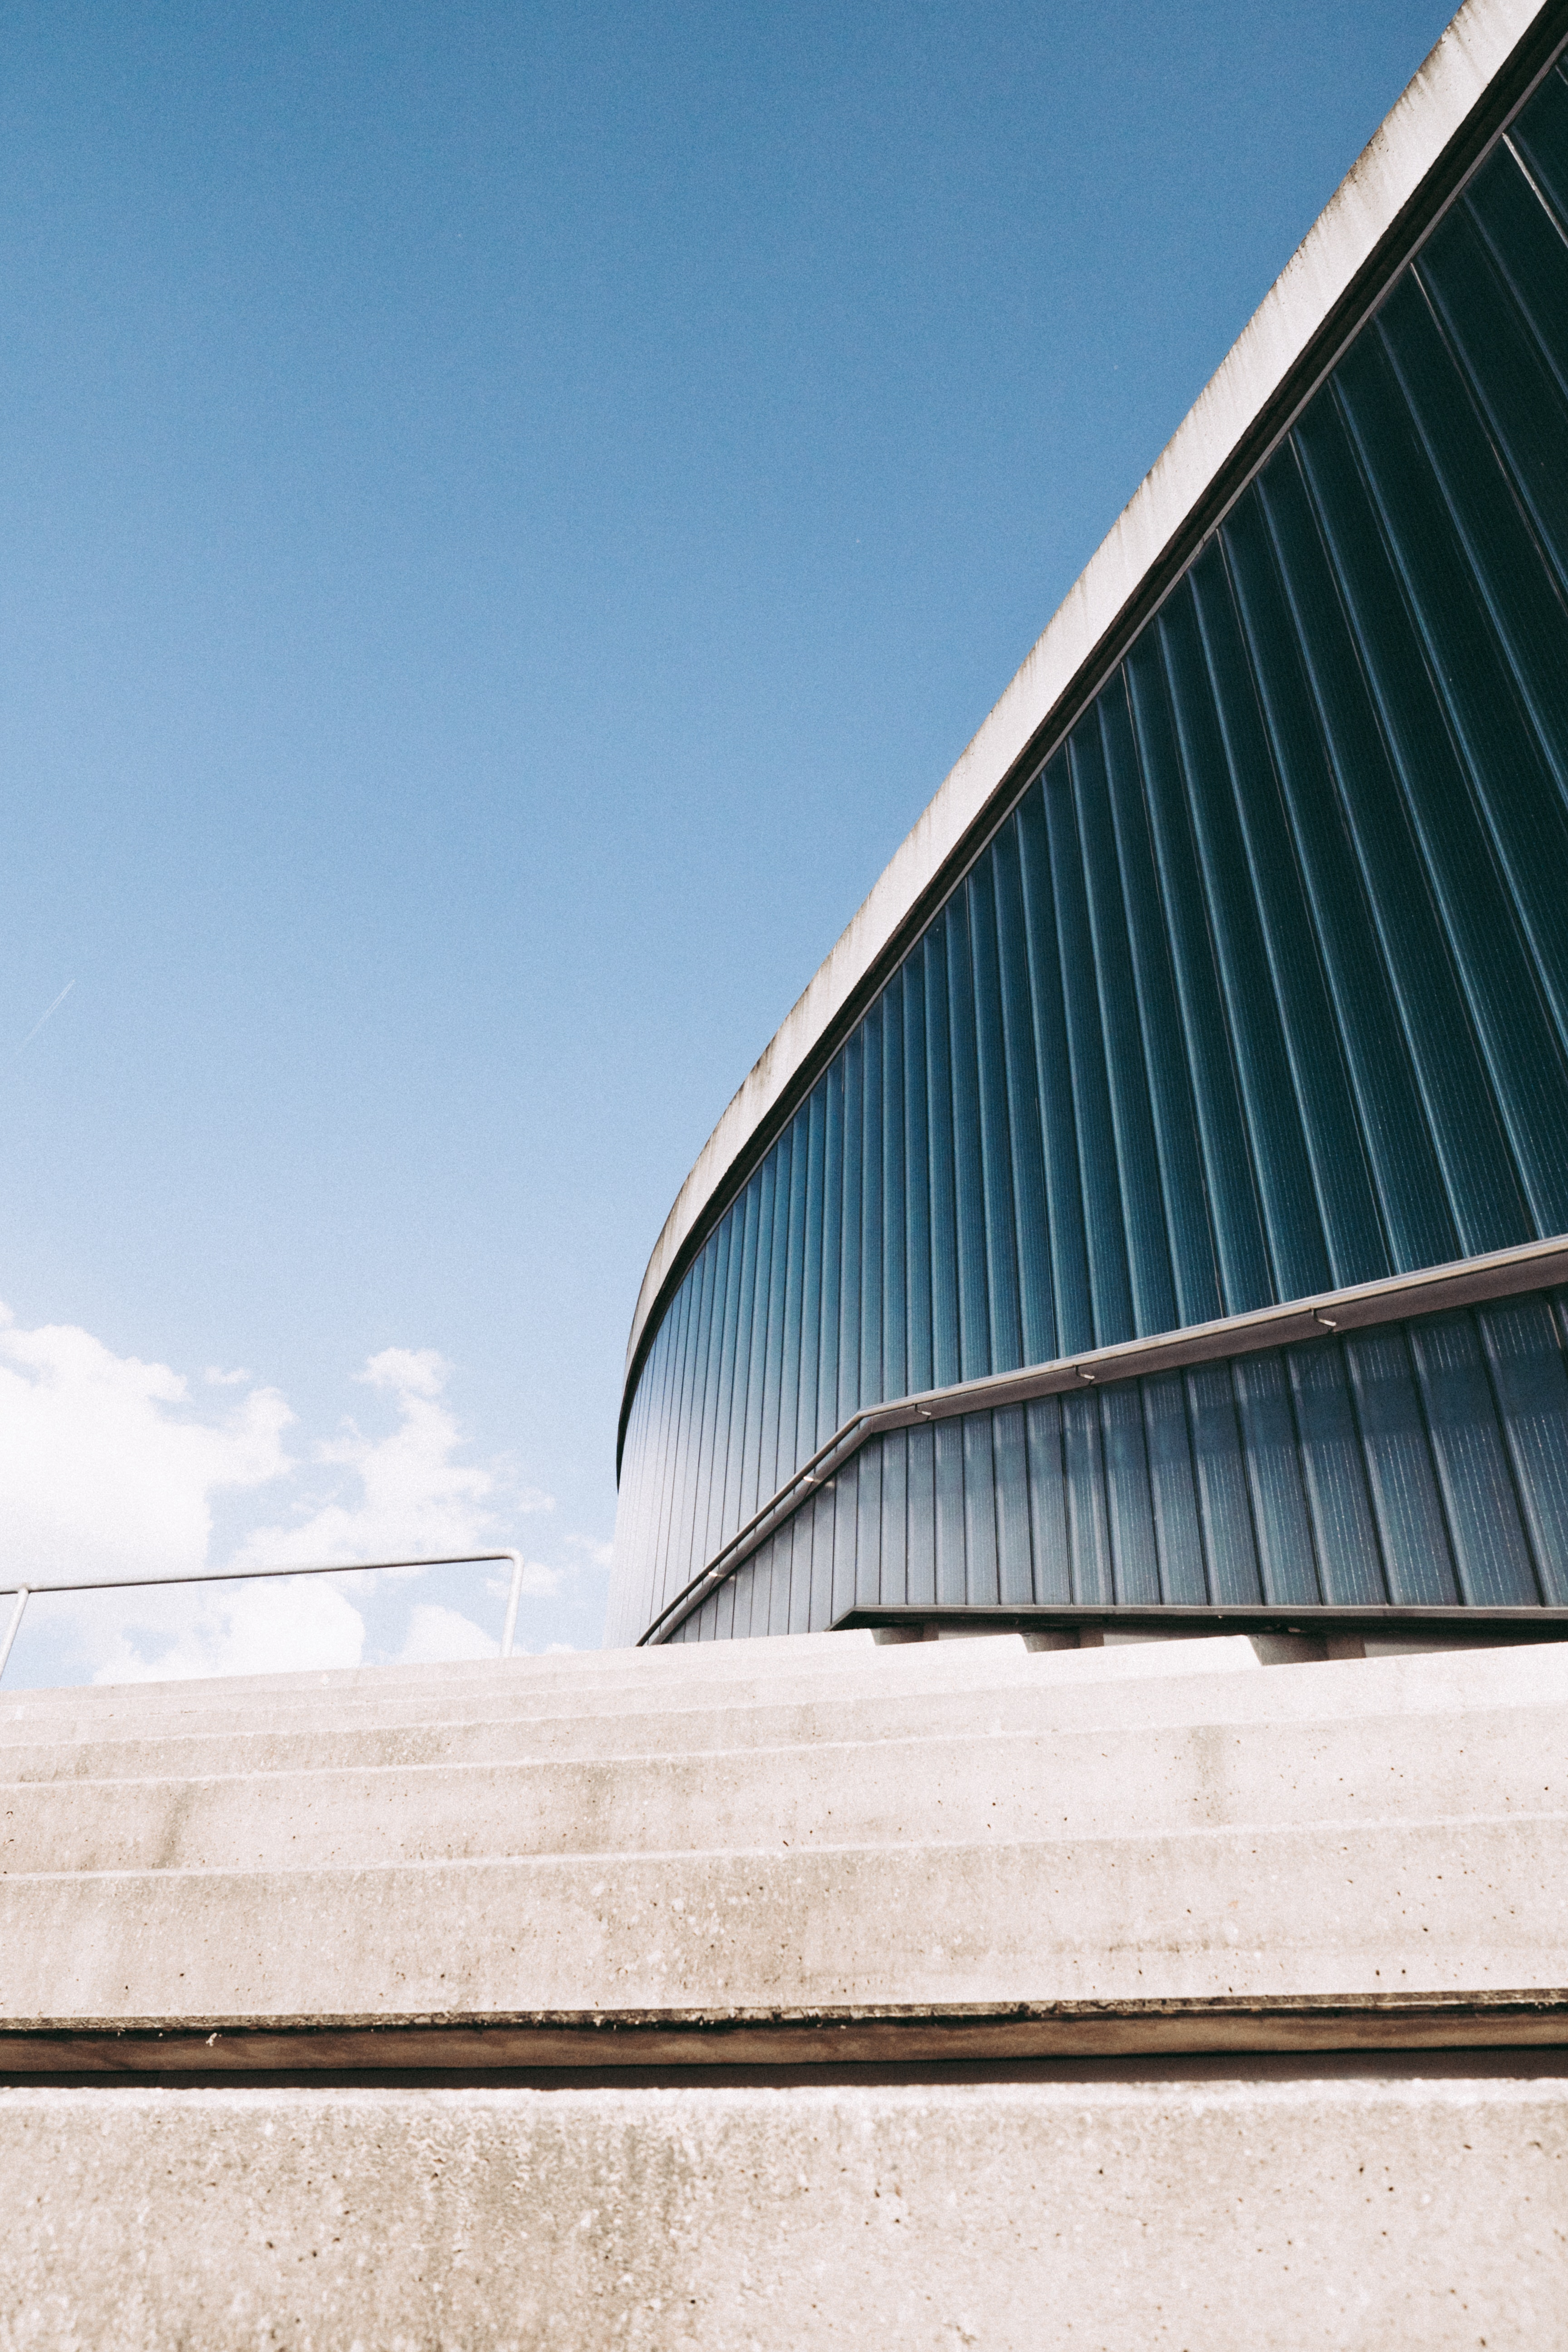 Low Angle Photography Of Building Free Stock Photo: Low Angle Shot Of Building · Free Stock Photo